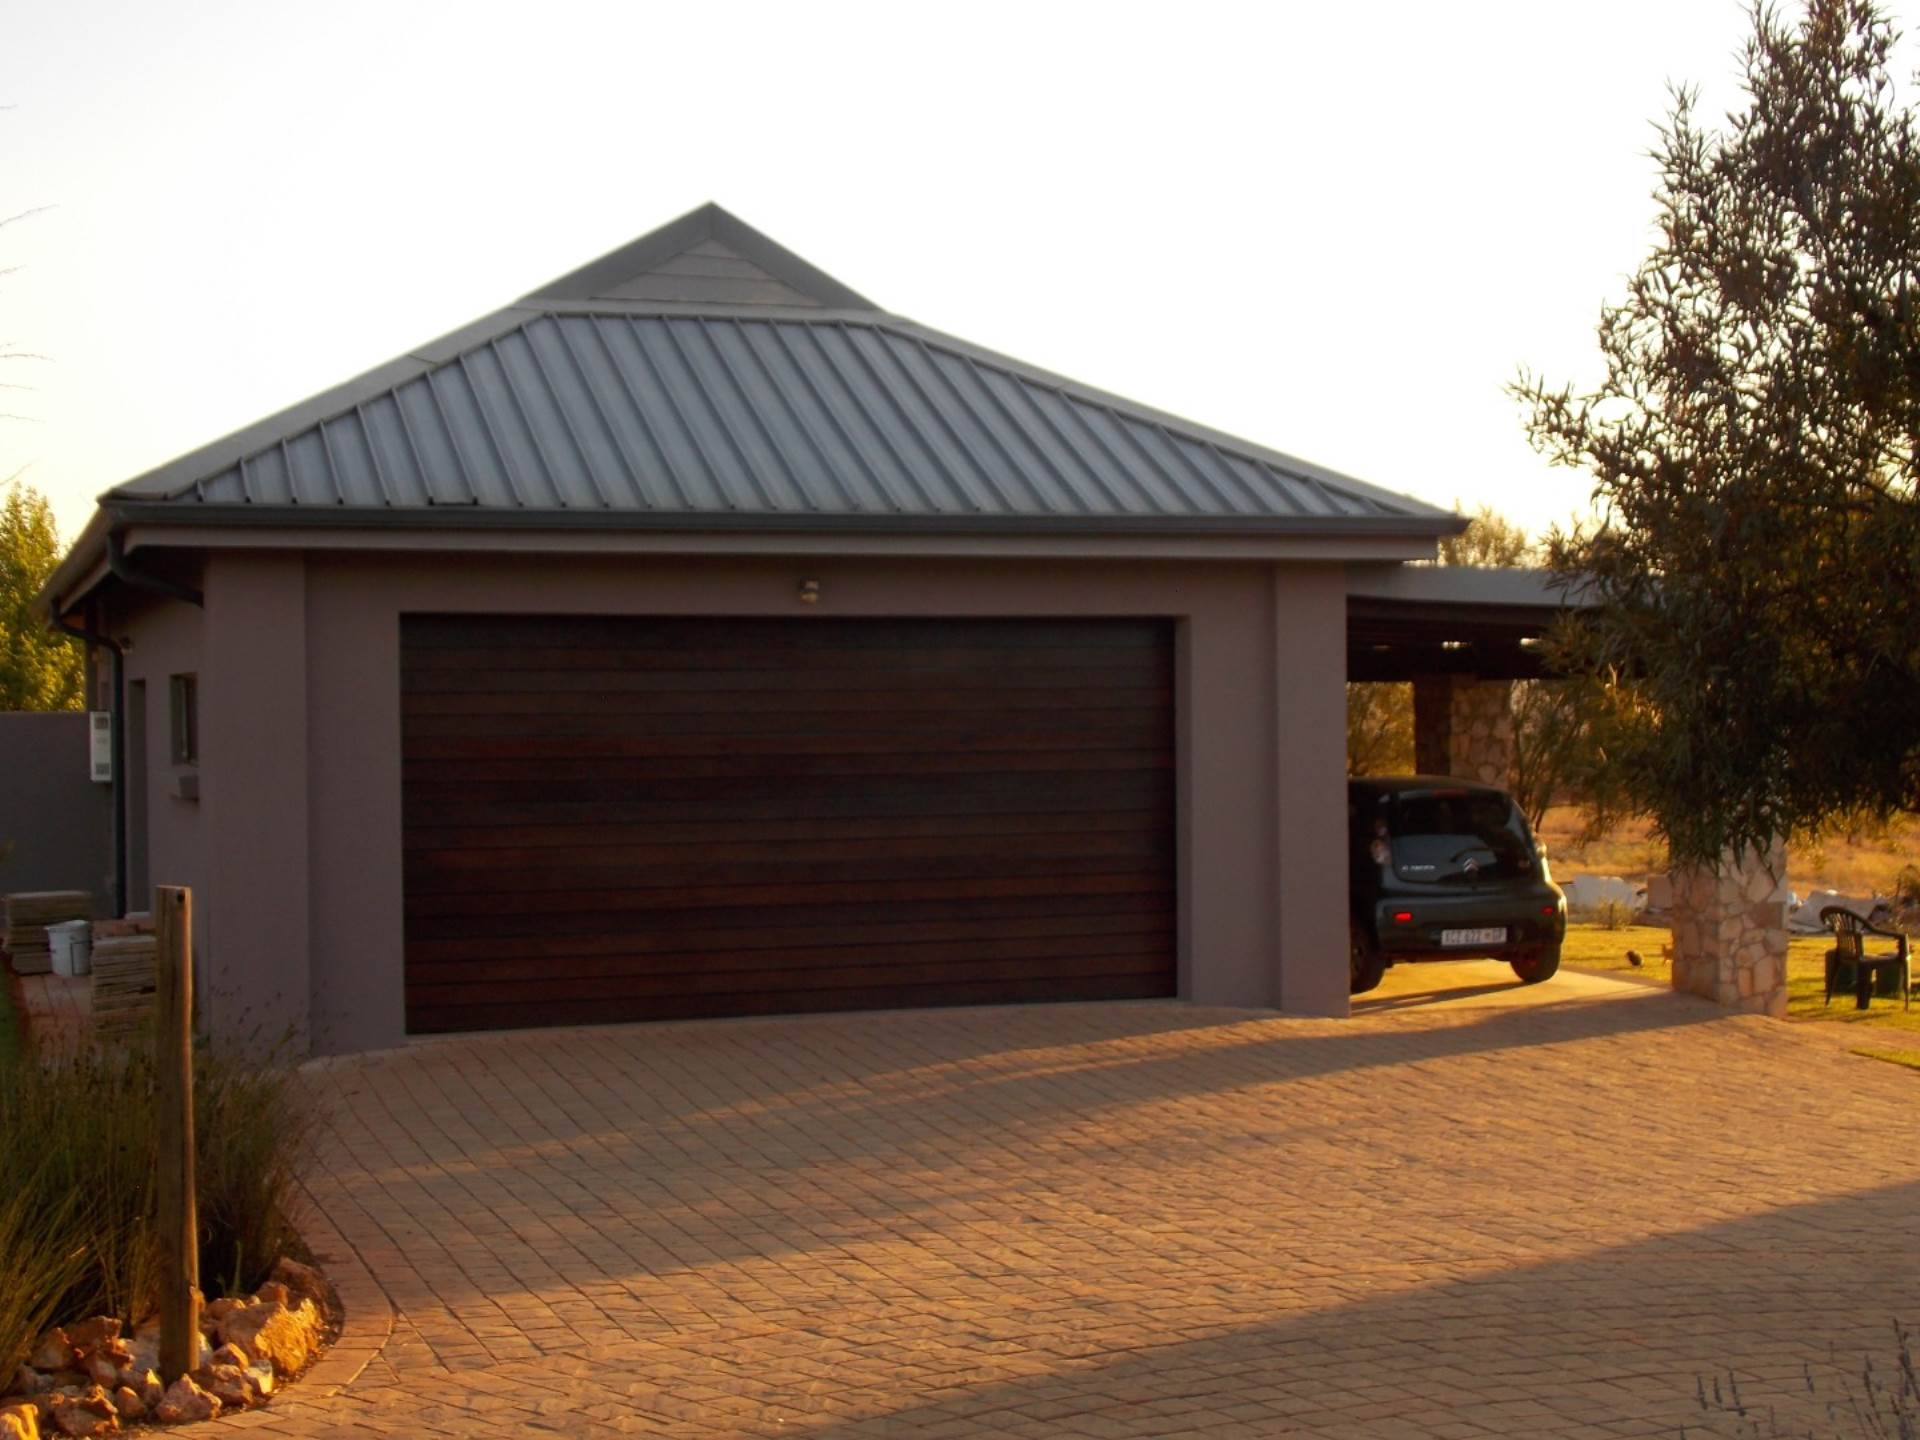 Rietvlei View Country Estate property for sale. Ref No: 13675032. Picture no 4